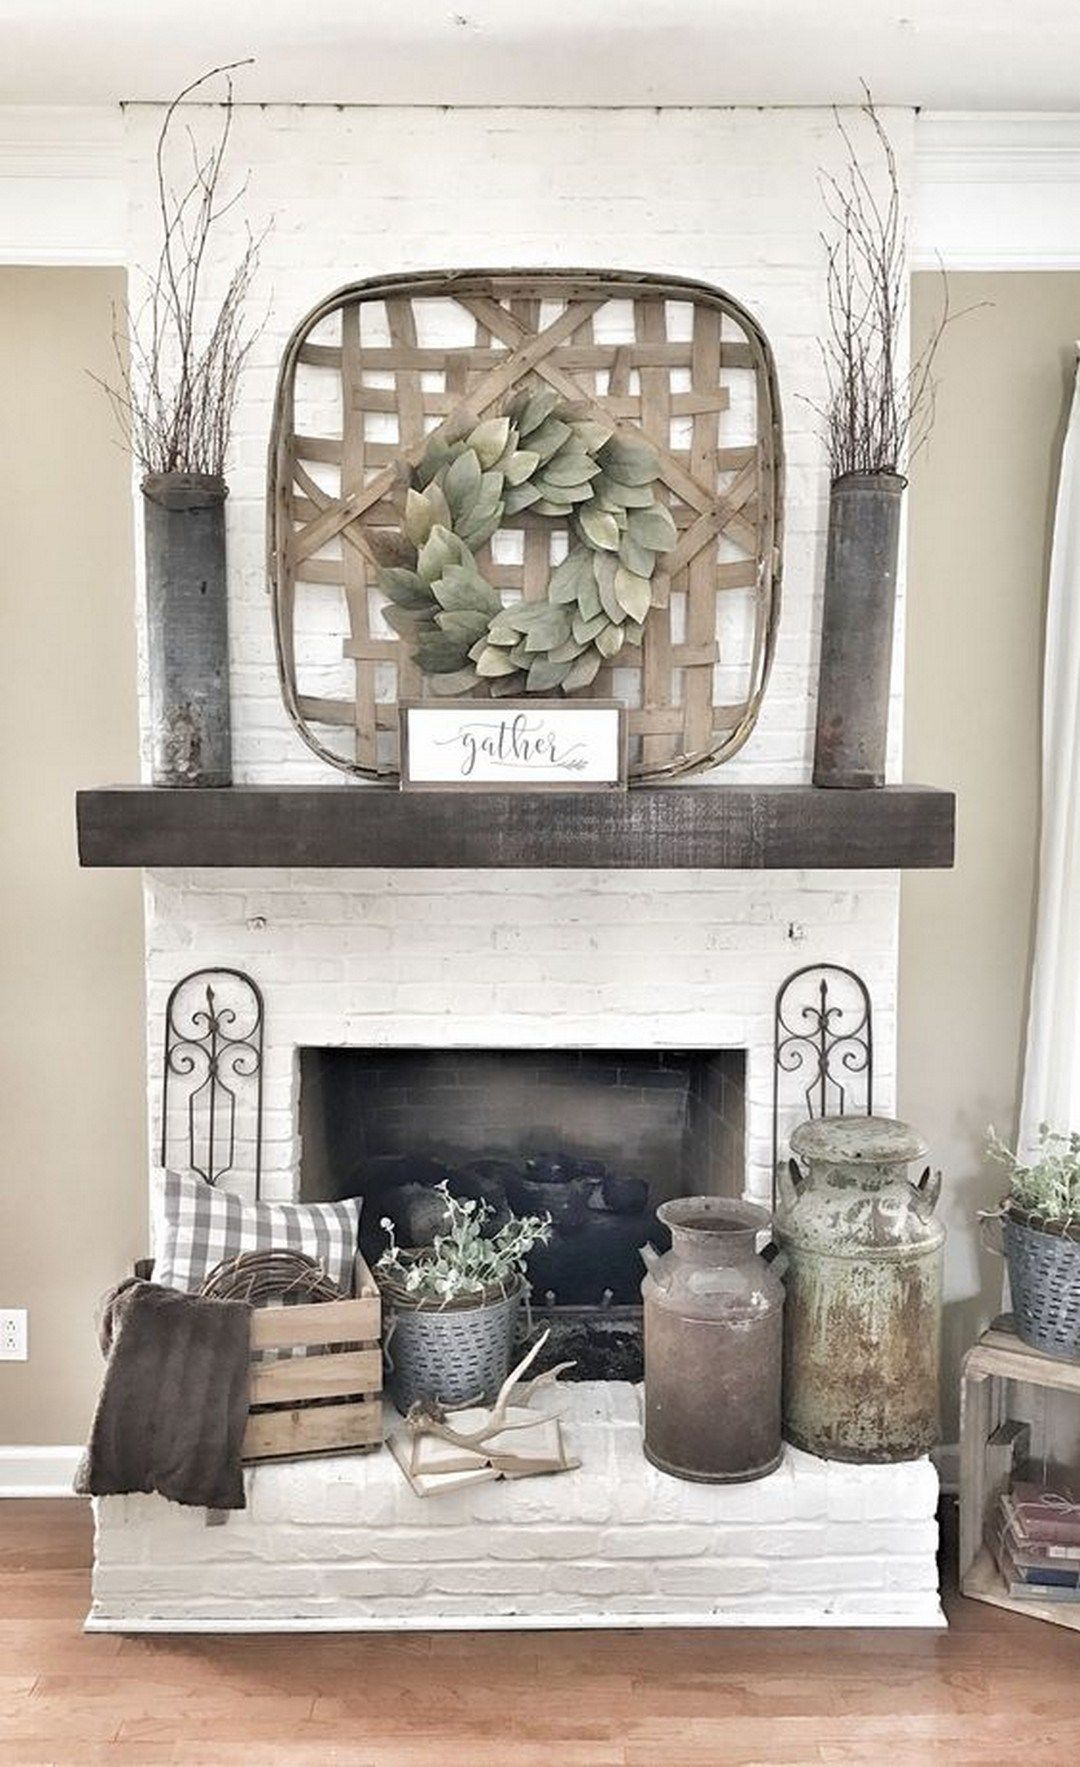 Modern Farmhouse Fireplace Ideas That You Should Copy Goodnewsarchitecture Farm House Living Room Farmhouse Style Living Room Farmhouse Decor Living Room